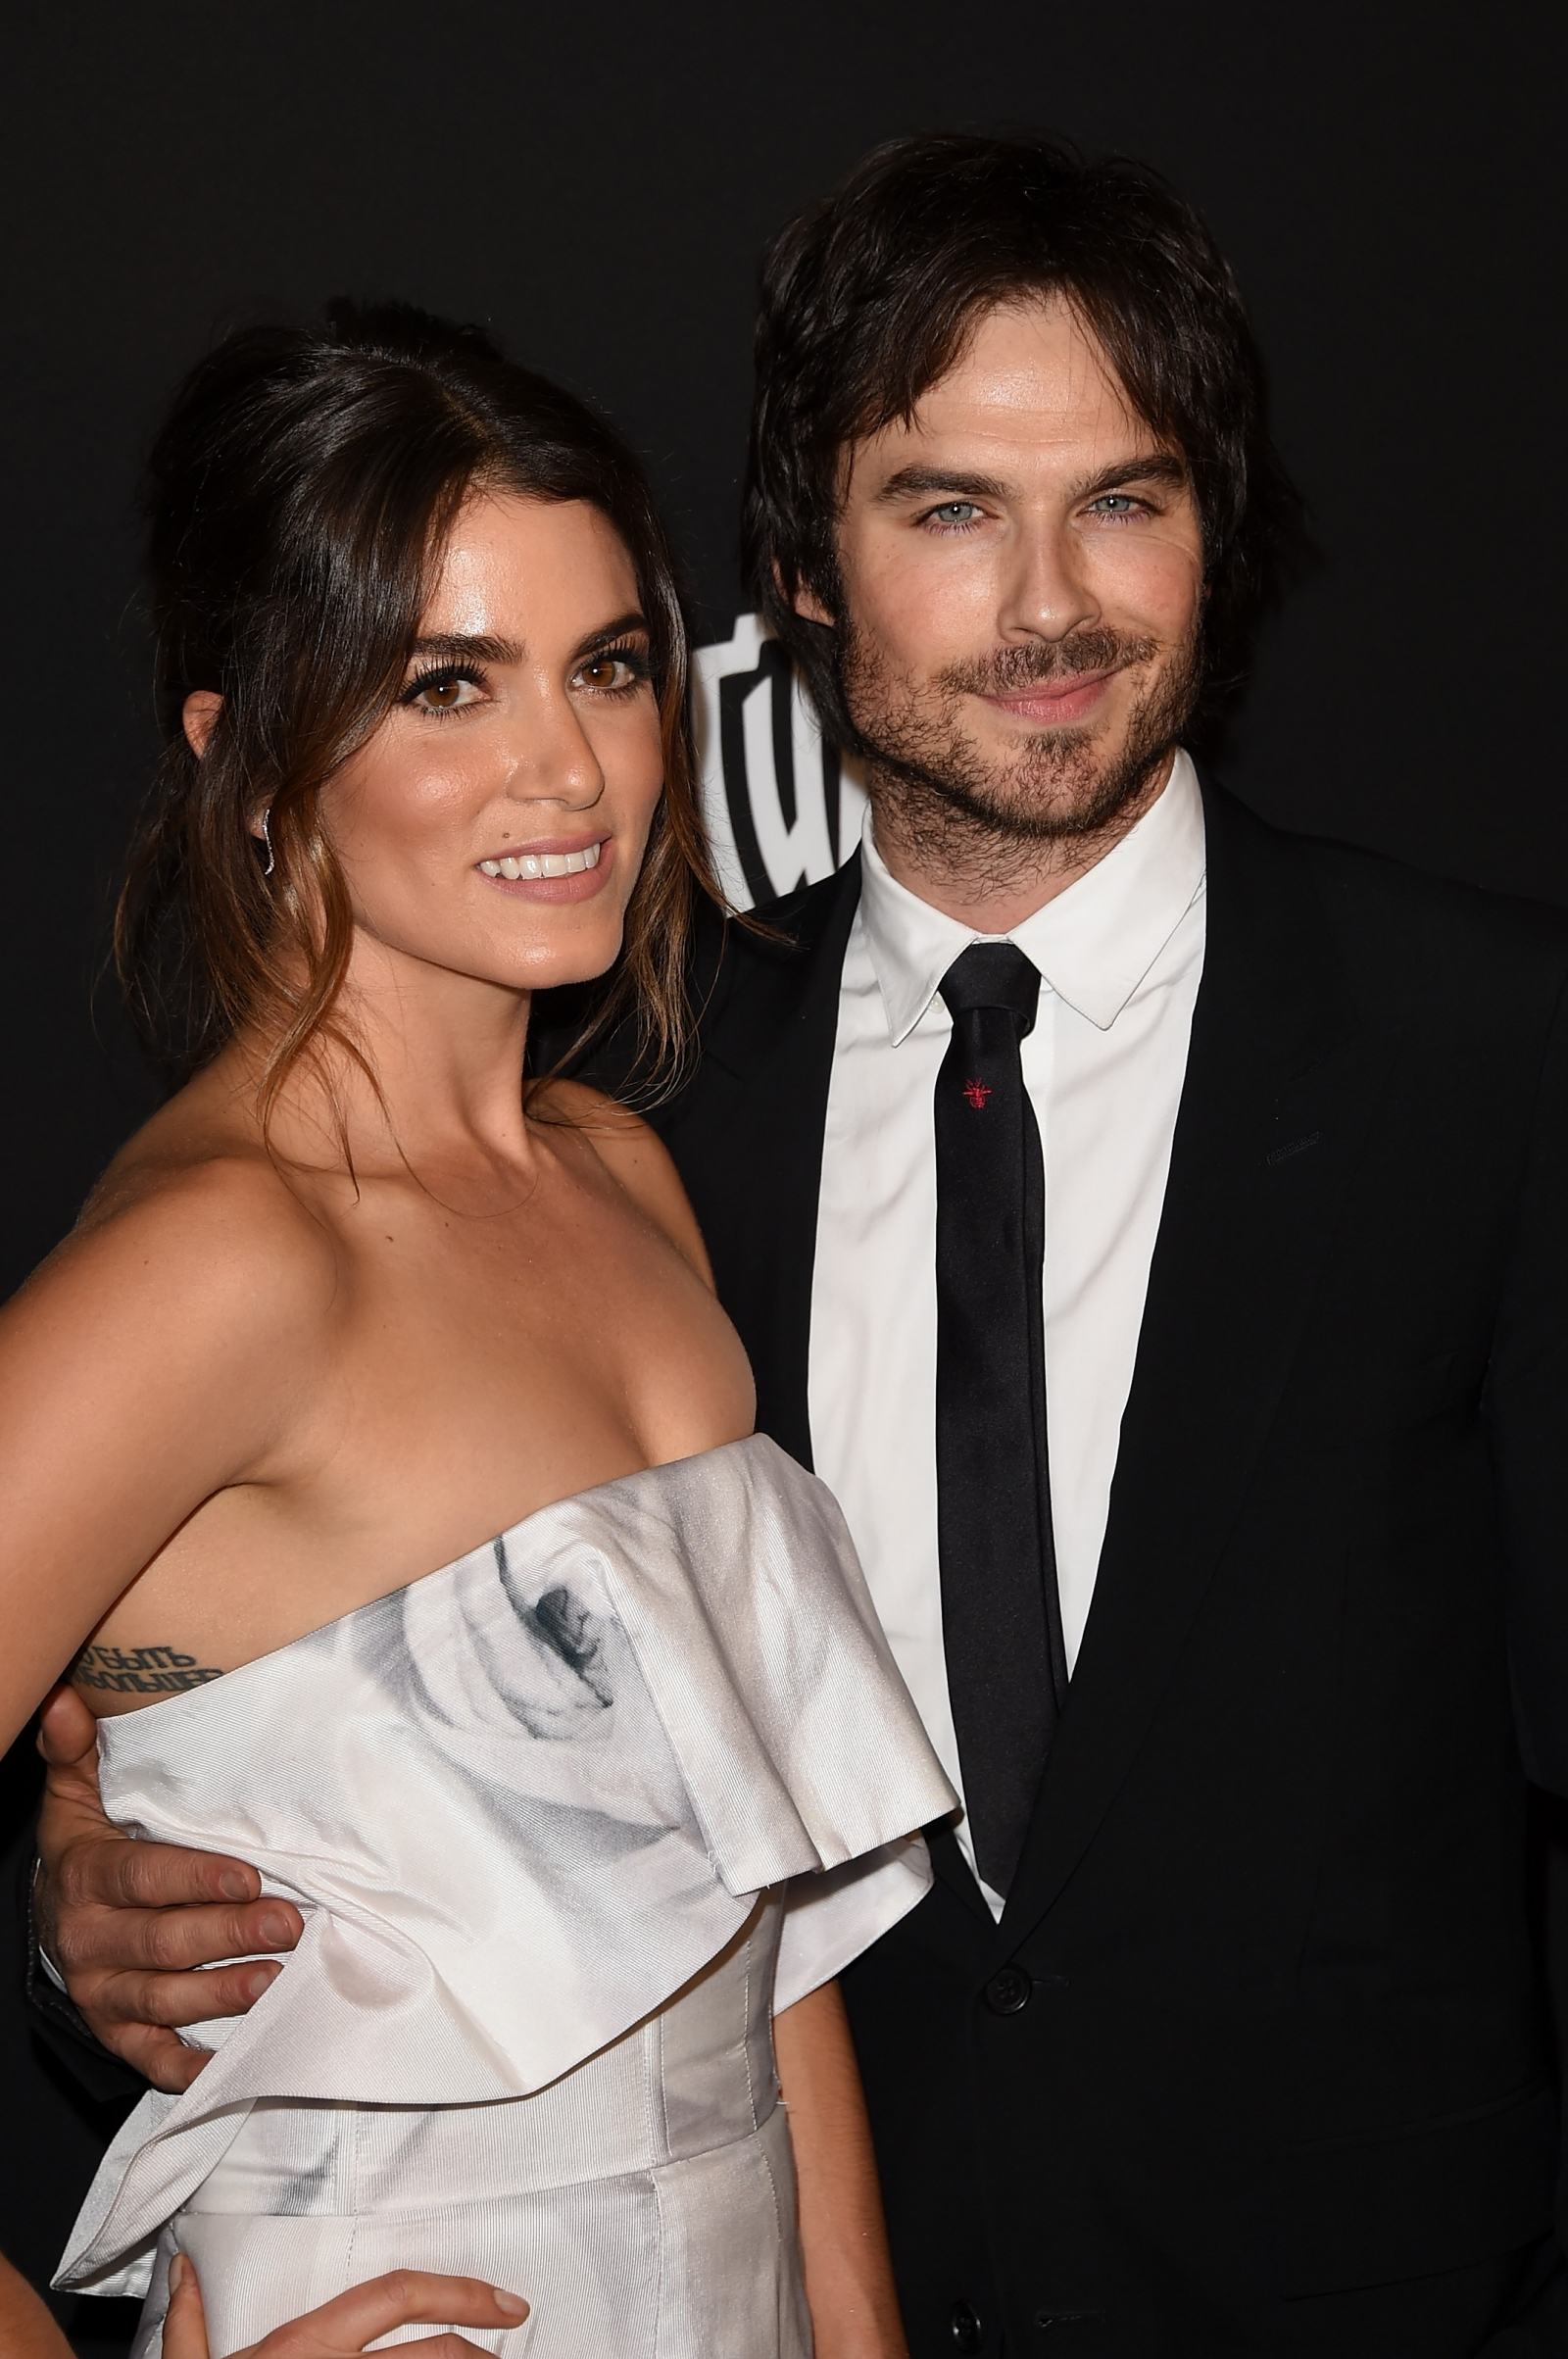 Ian Somerhalder and Nikki Reed